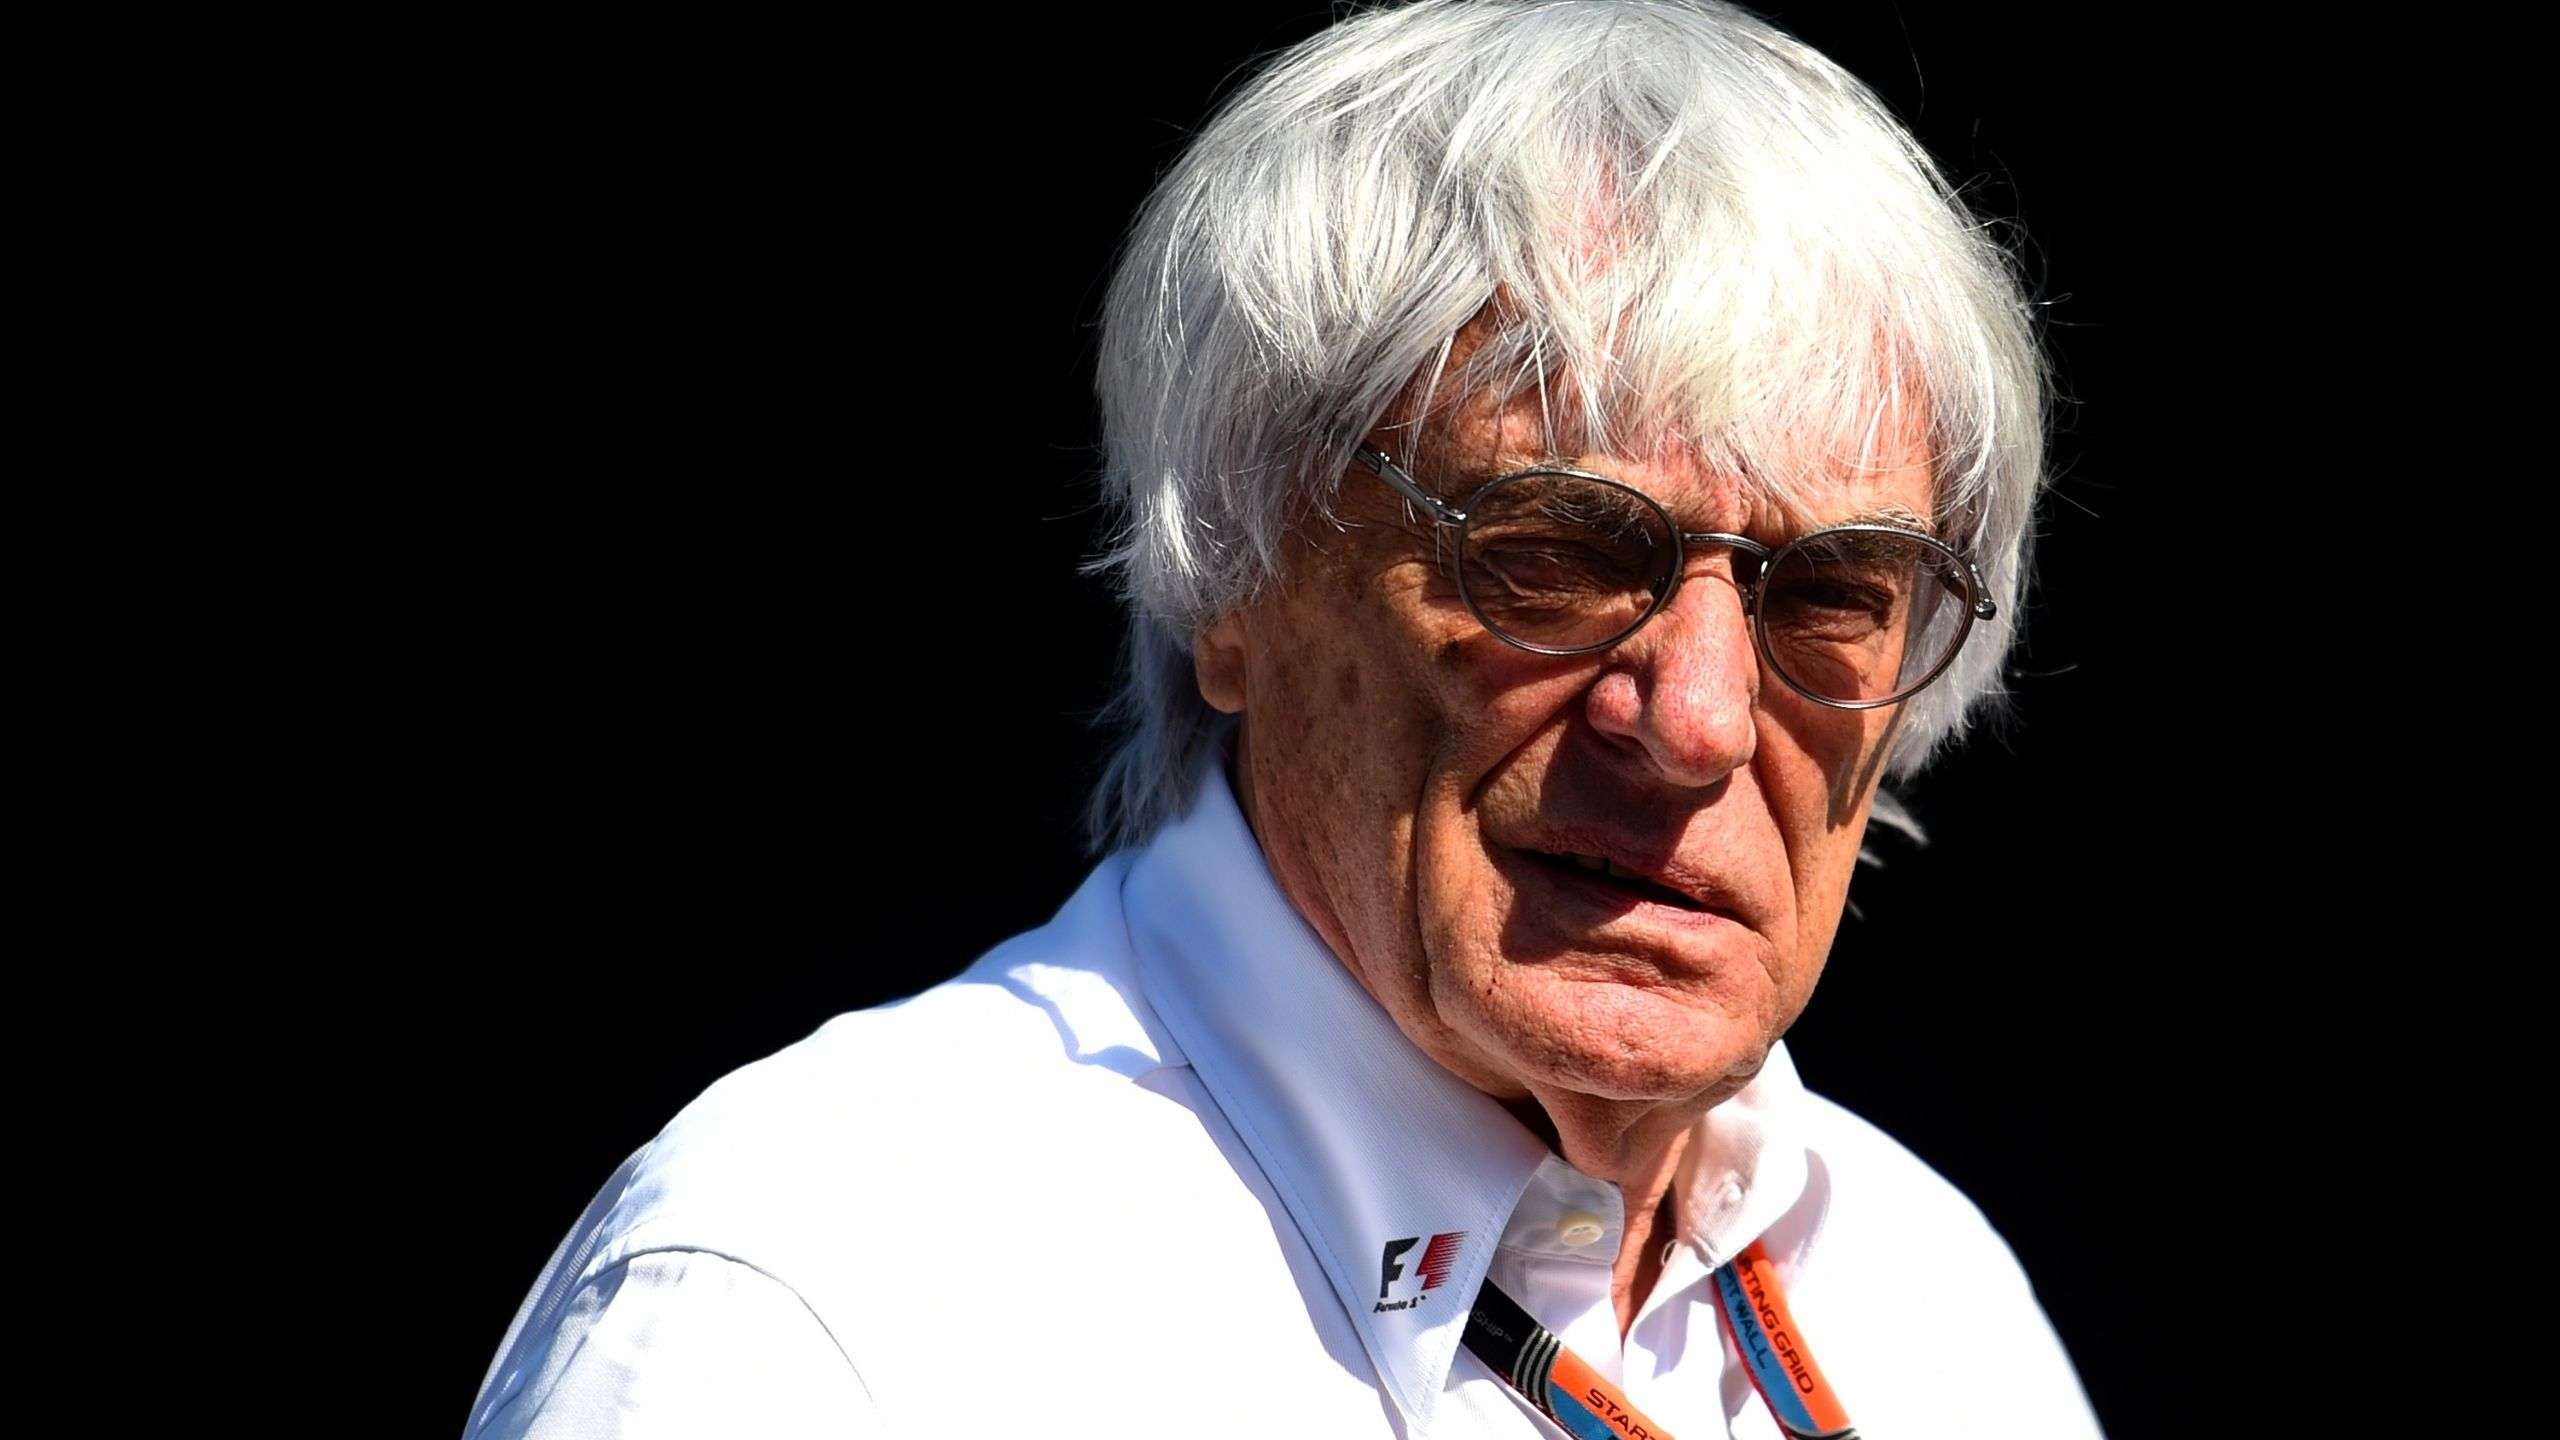 """""""That's the only way to keep the tension high"""" - Former boss Bernie Ecclestone suggests unique format for F1 races this season"""